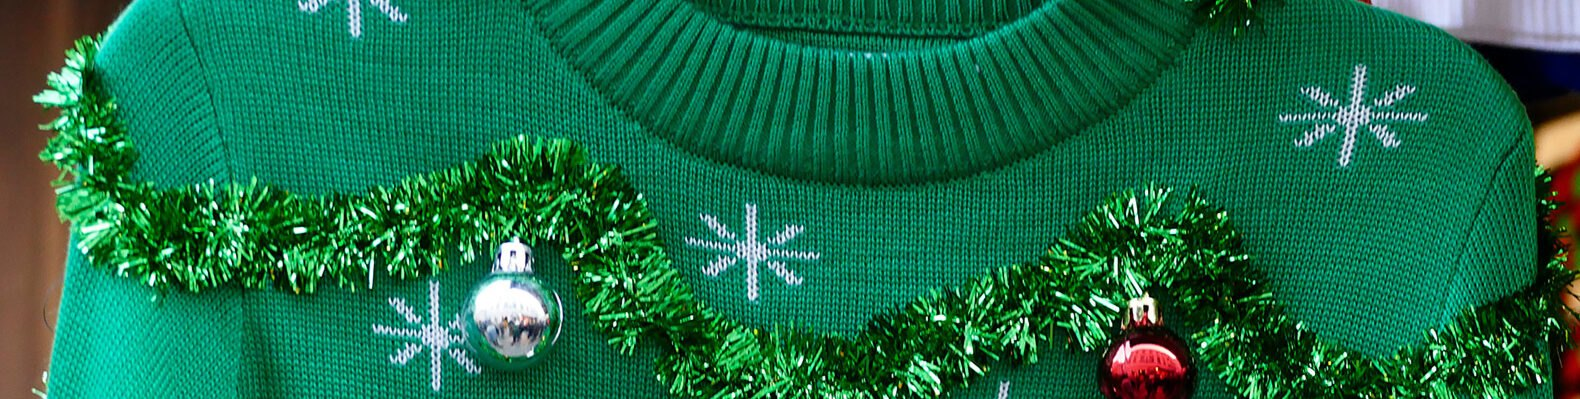 green sweater covered in tinsel and ornaments